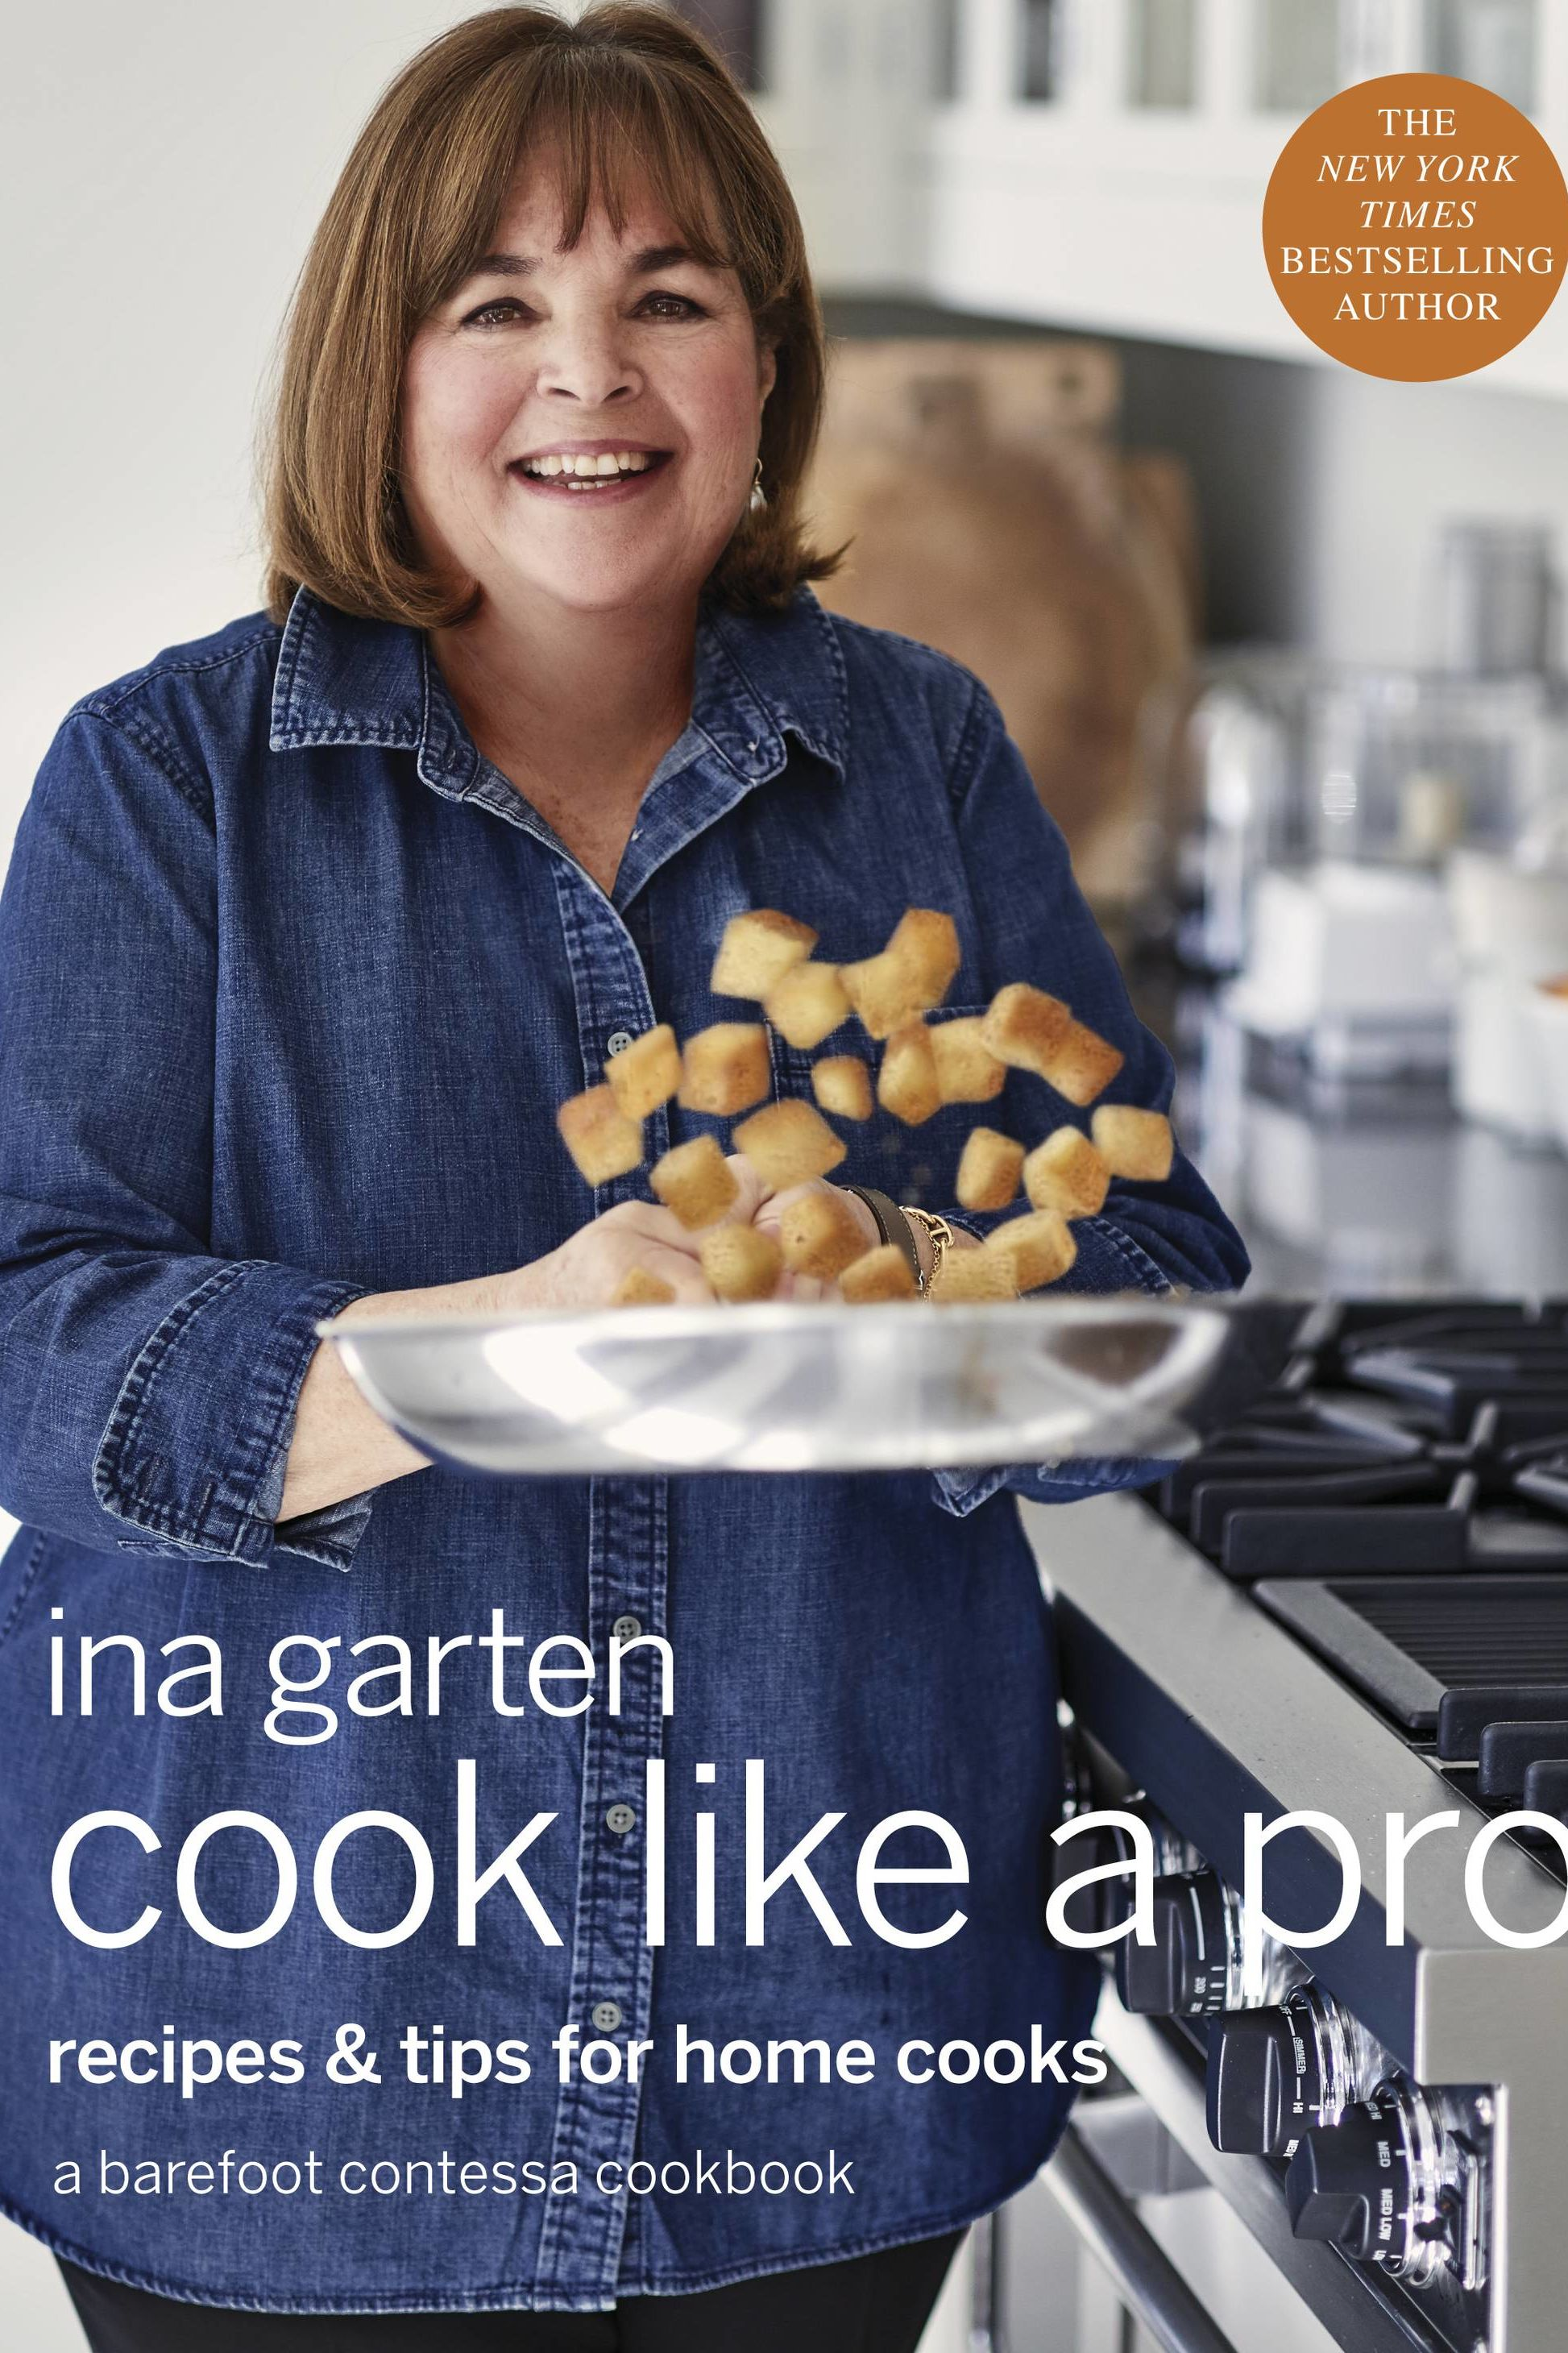 Ina Garten Just Released the First Recipe From Her Upcoming Cookbook